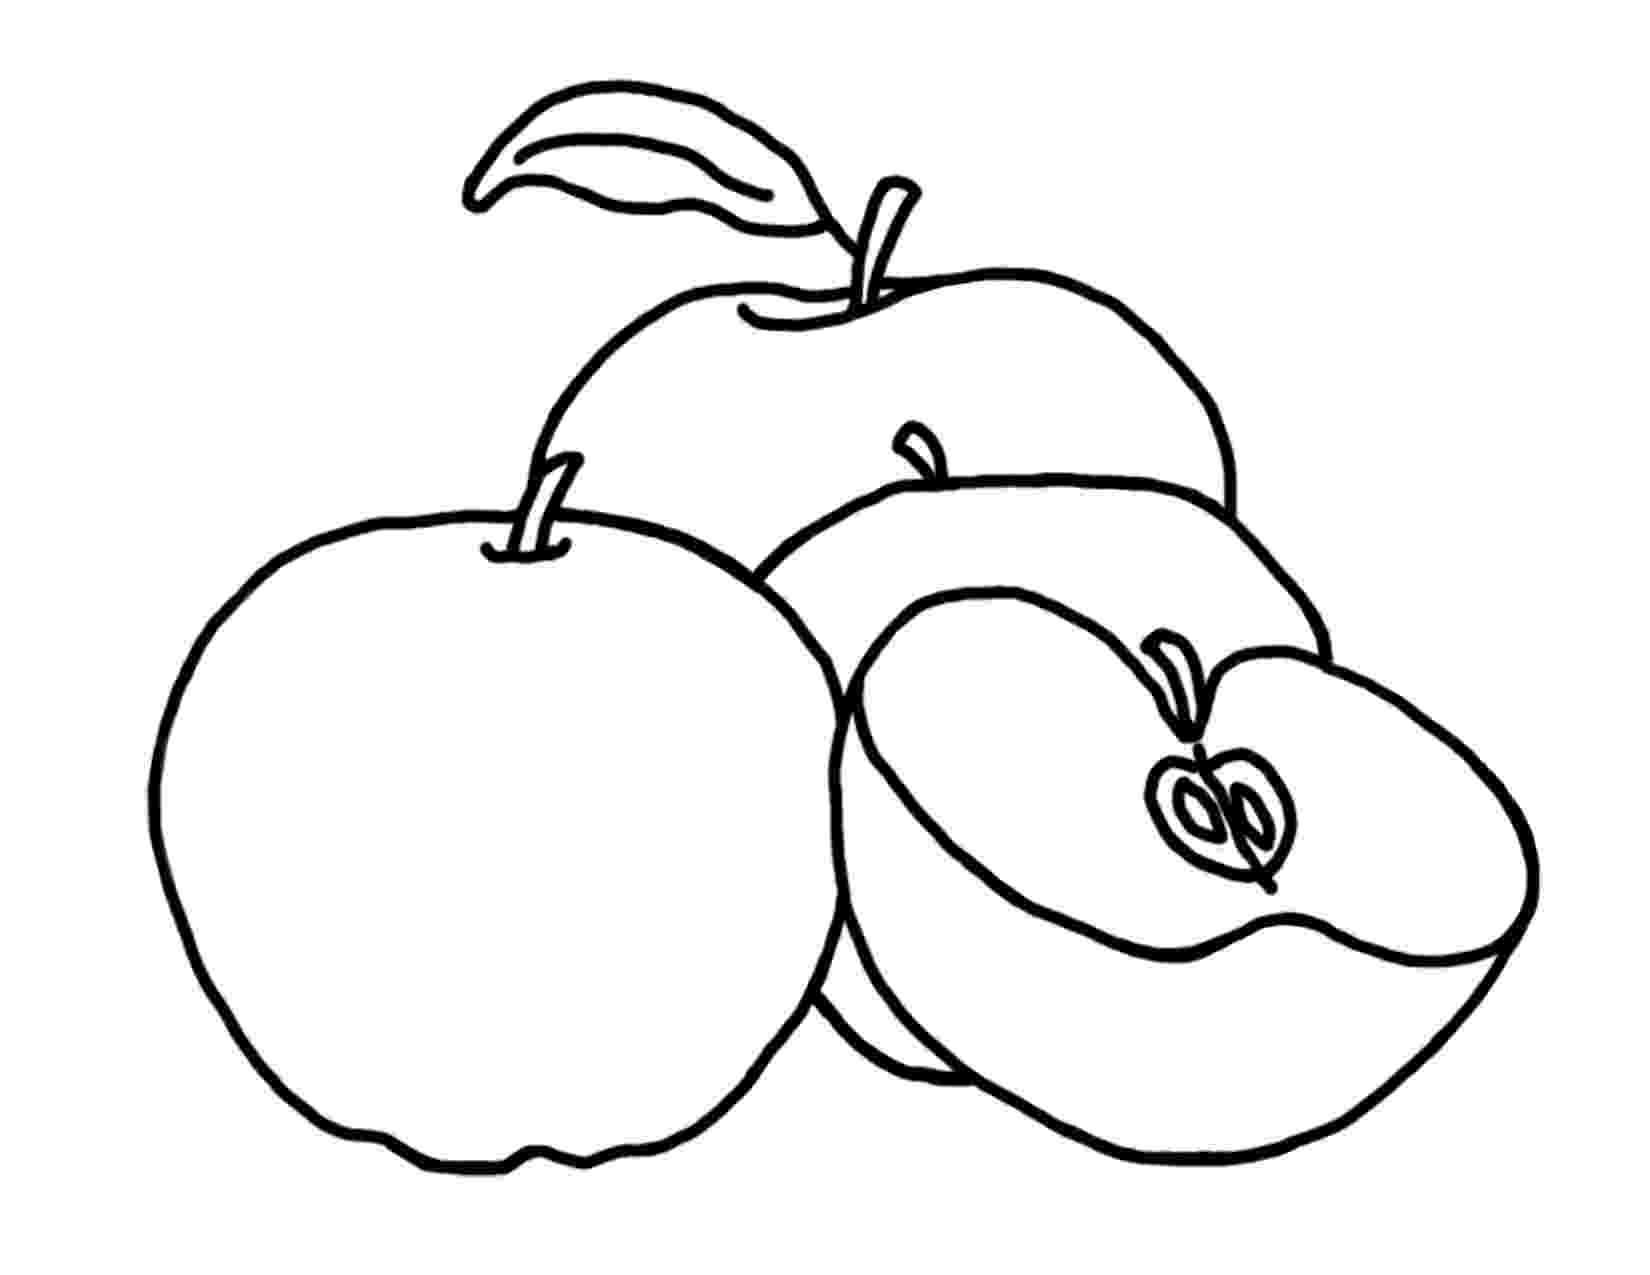 picture of apples apple coloring pages for preschoolers 360coloringpages apples picture of